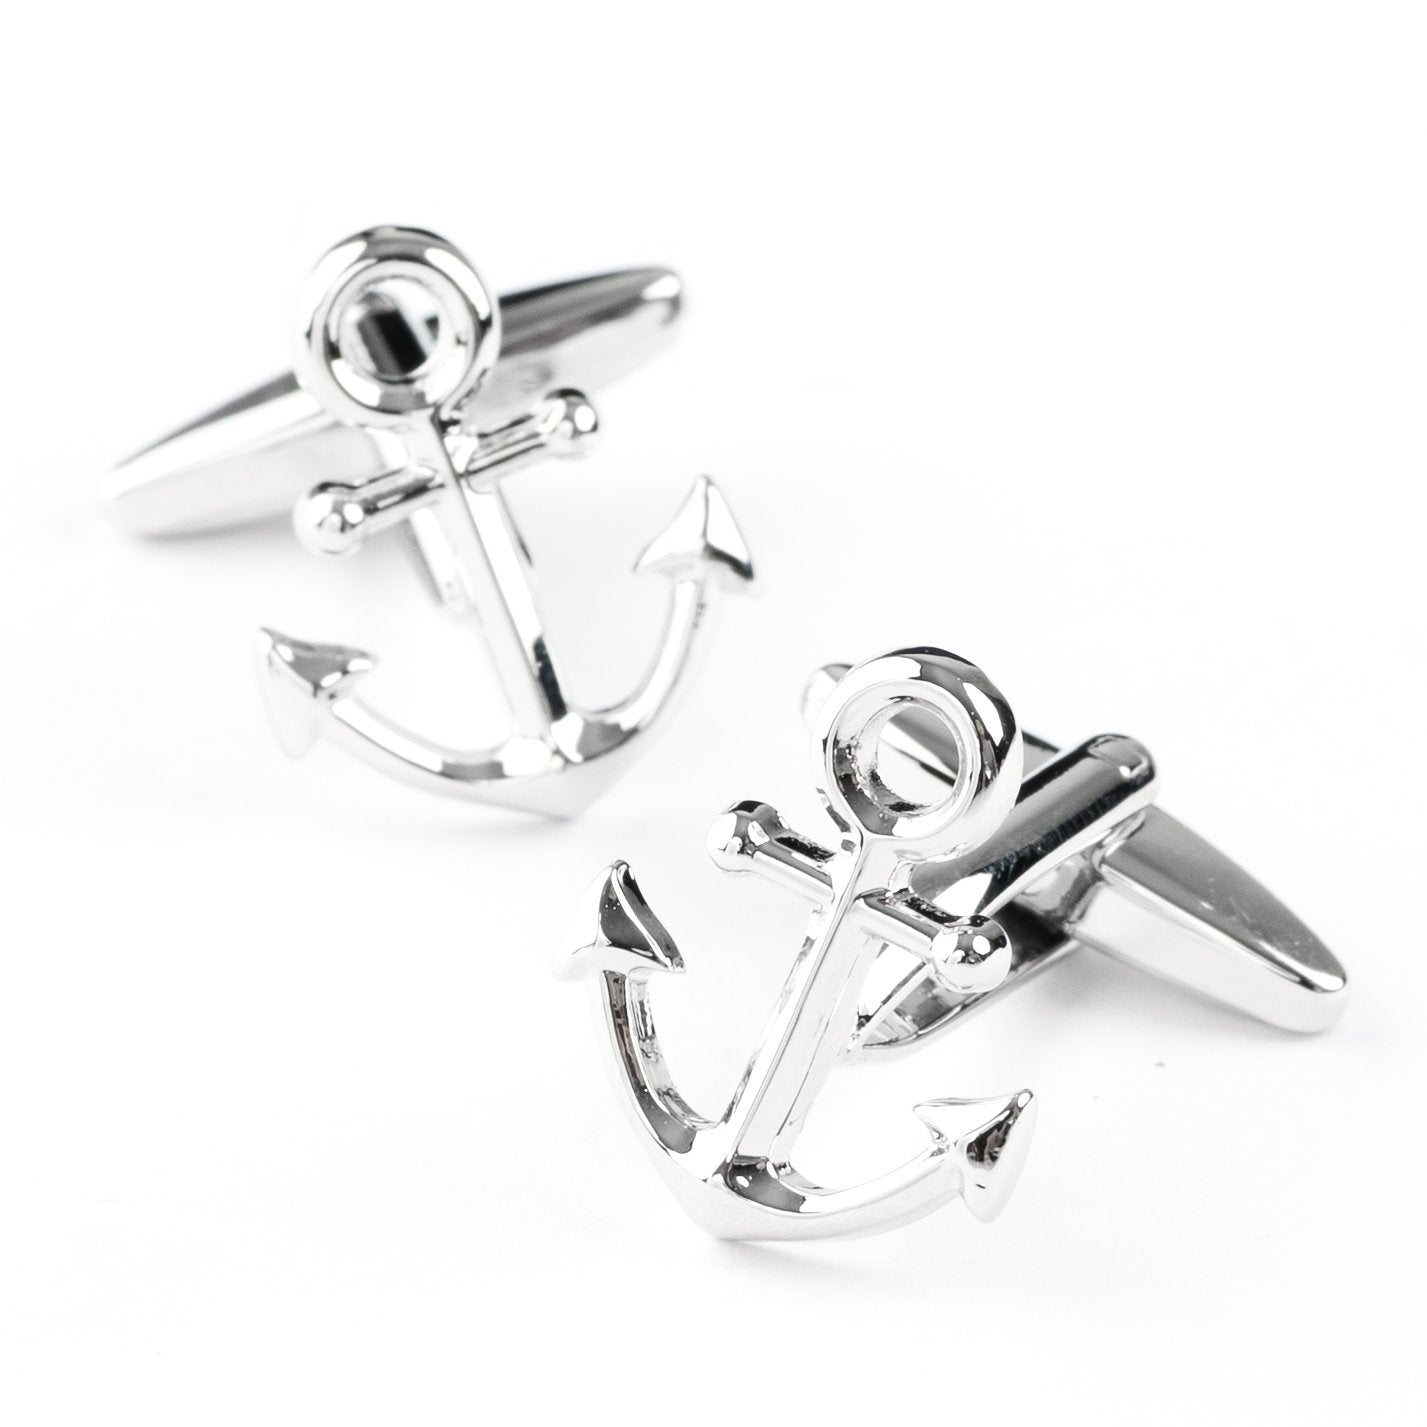 Shiny Silver Ship Anchor Cufflinks, Novelty Cufflinks, Cuffed.com.au, CL6411, Nautical, Clinks Australia